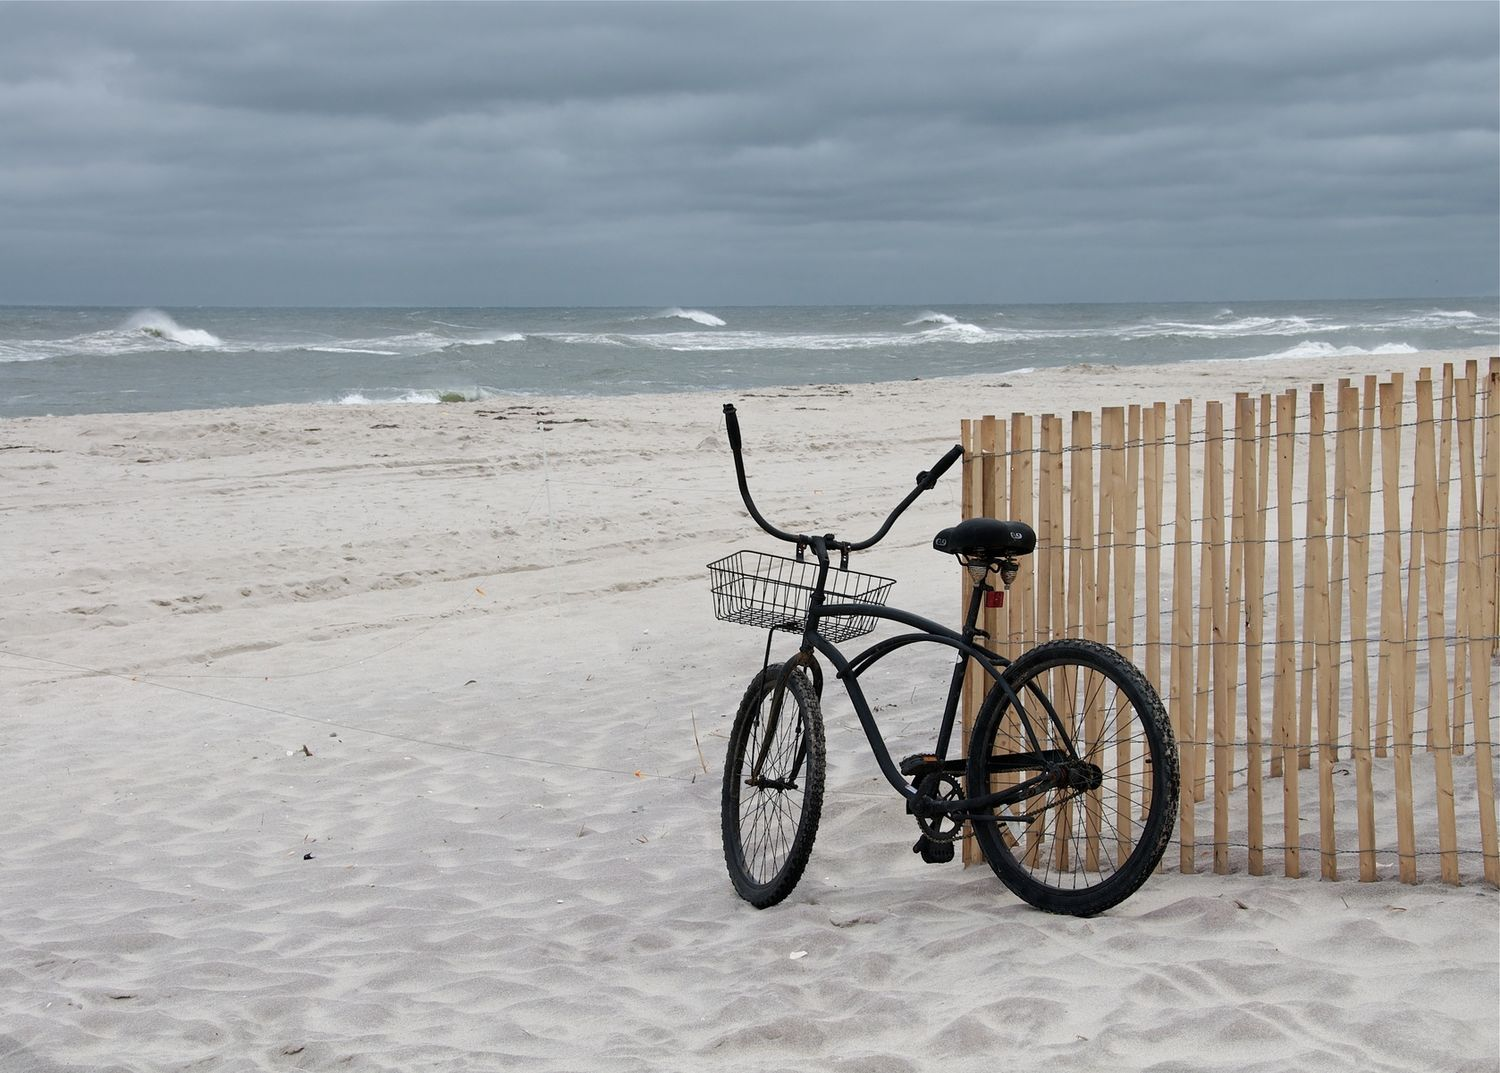 Fire Island Beach (with storm and bicycle)